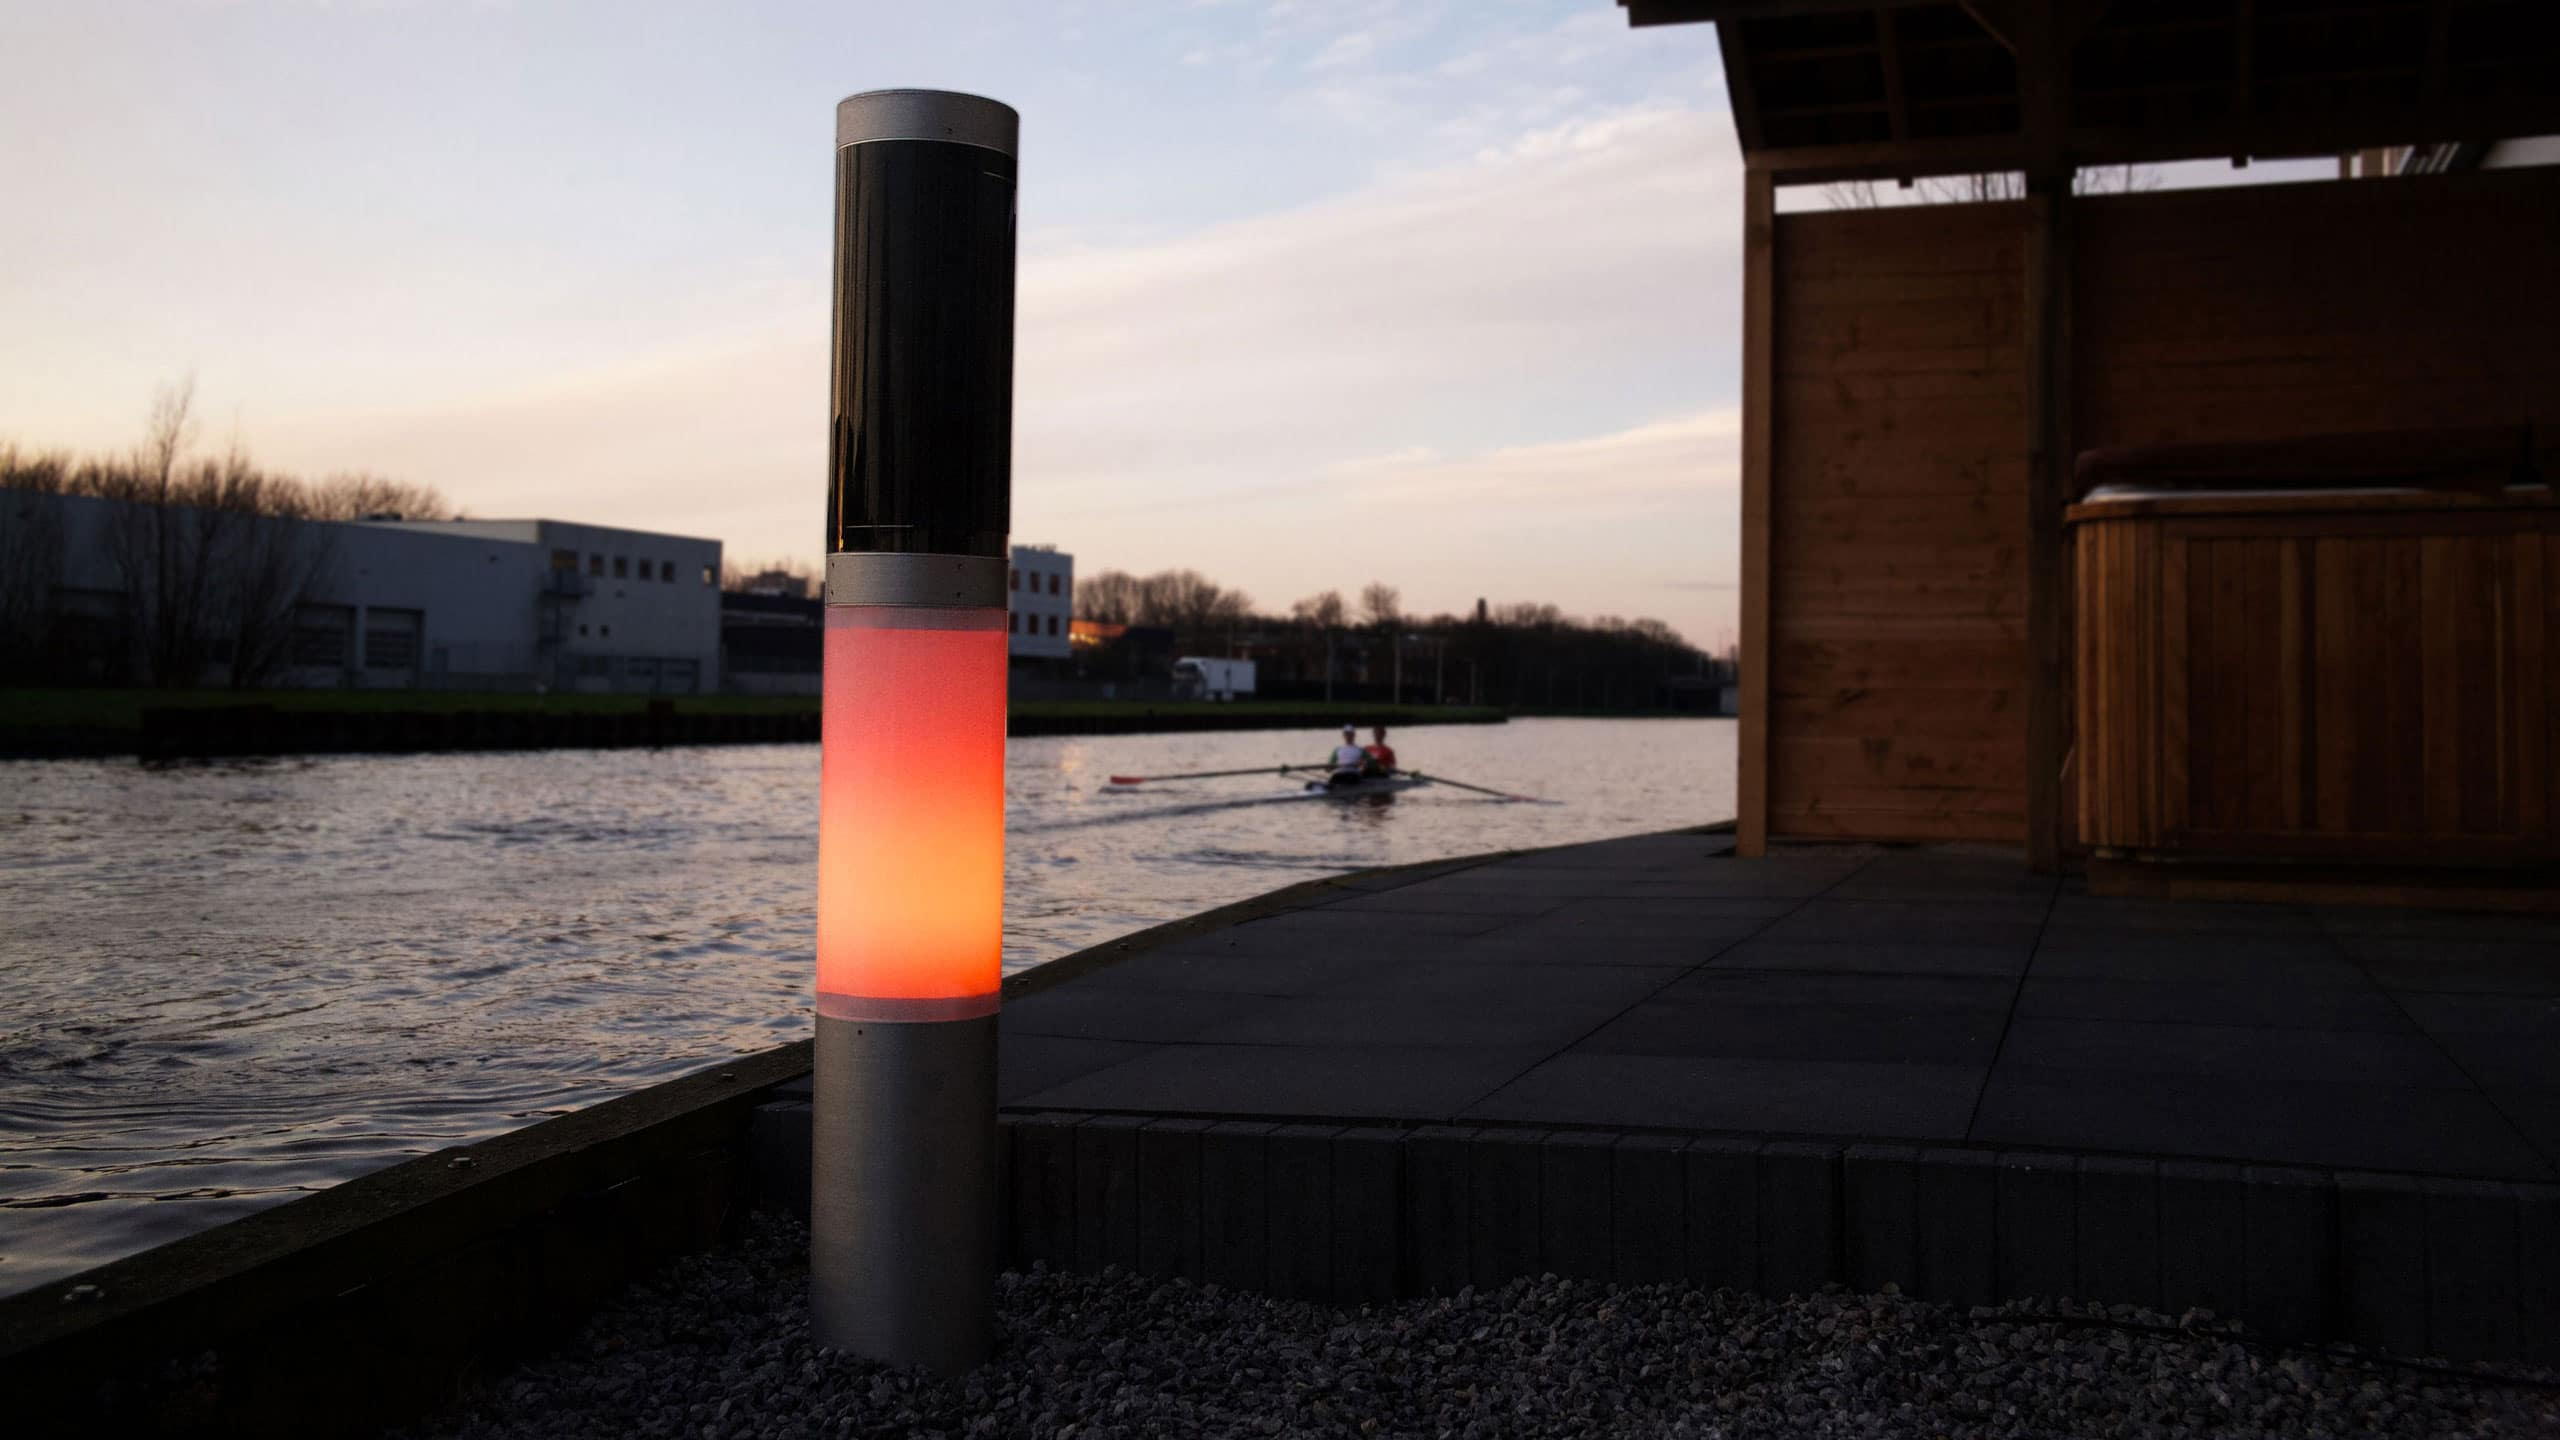 NxT solar outdoor lighting LED lamp near river